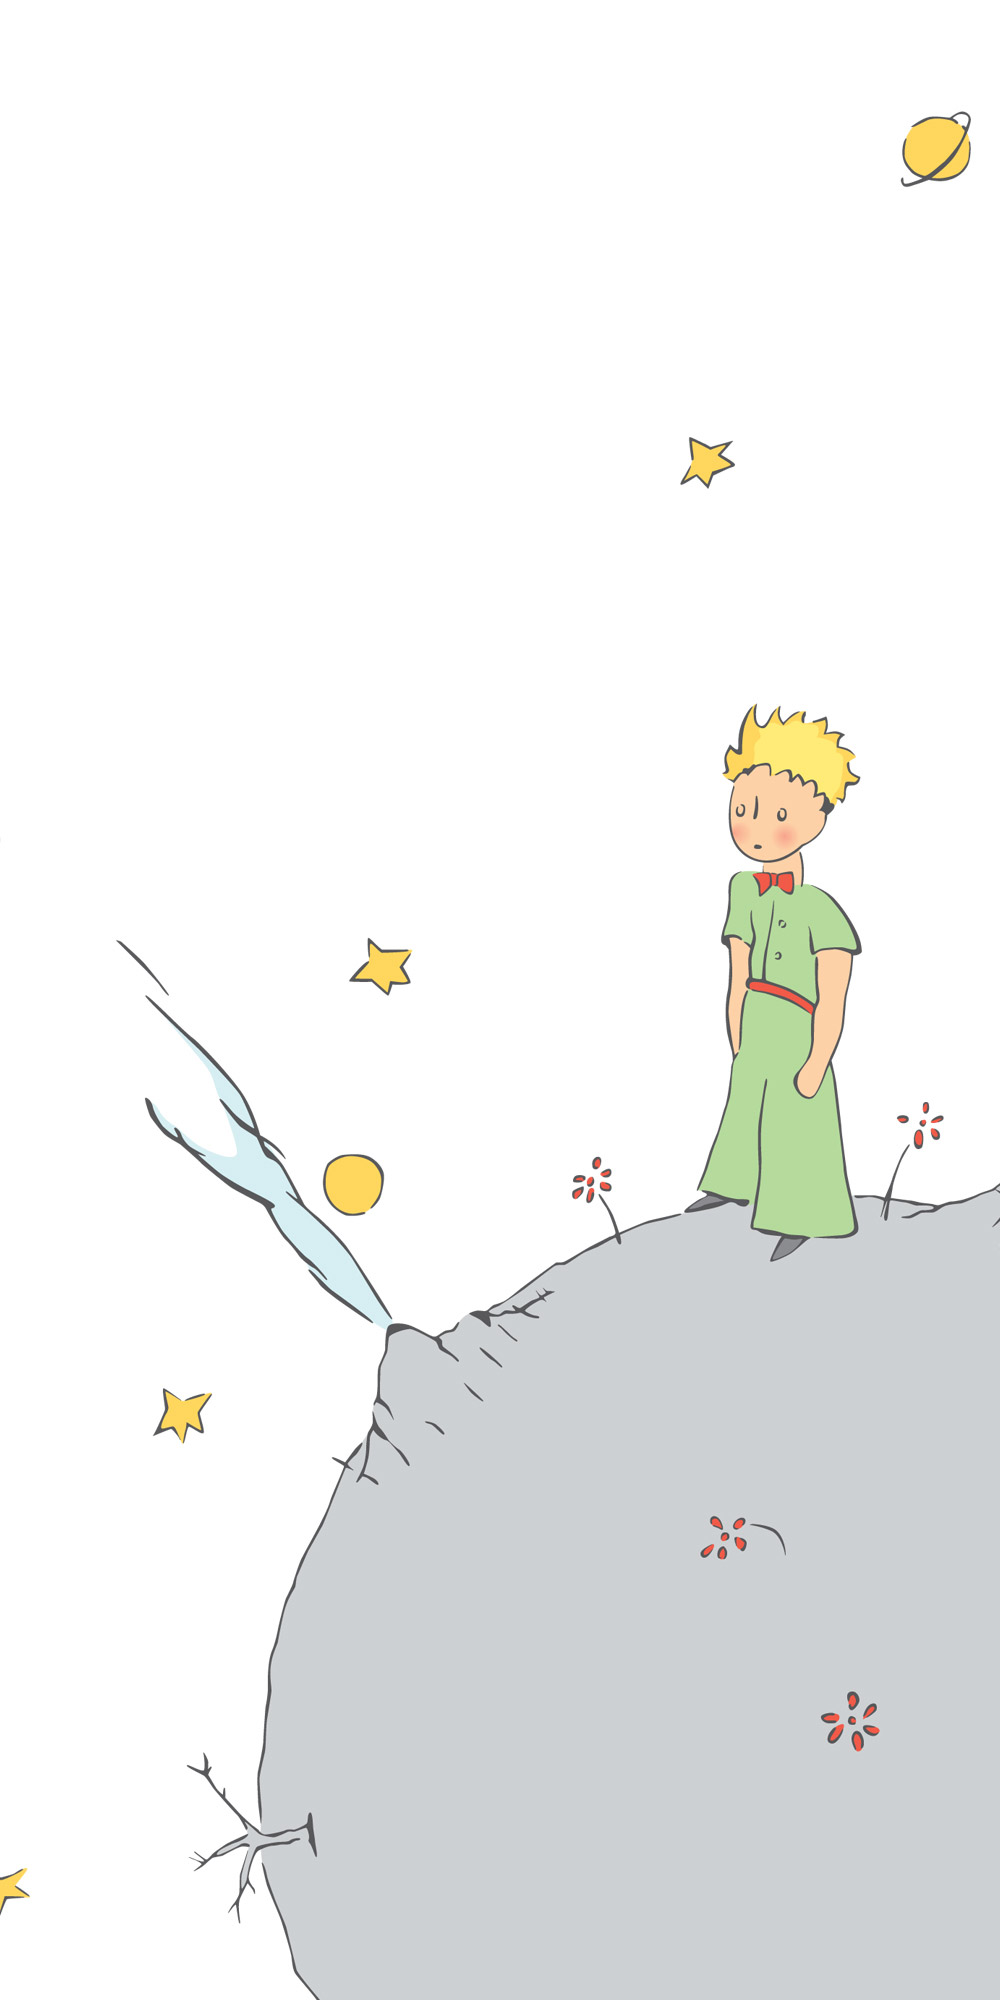 Exposition « Le Petit Prince » – French May 2014 à Hong Kong